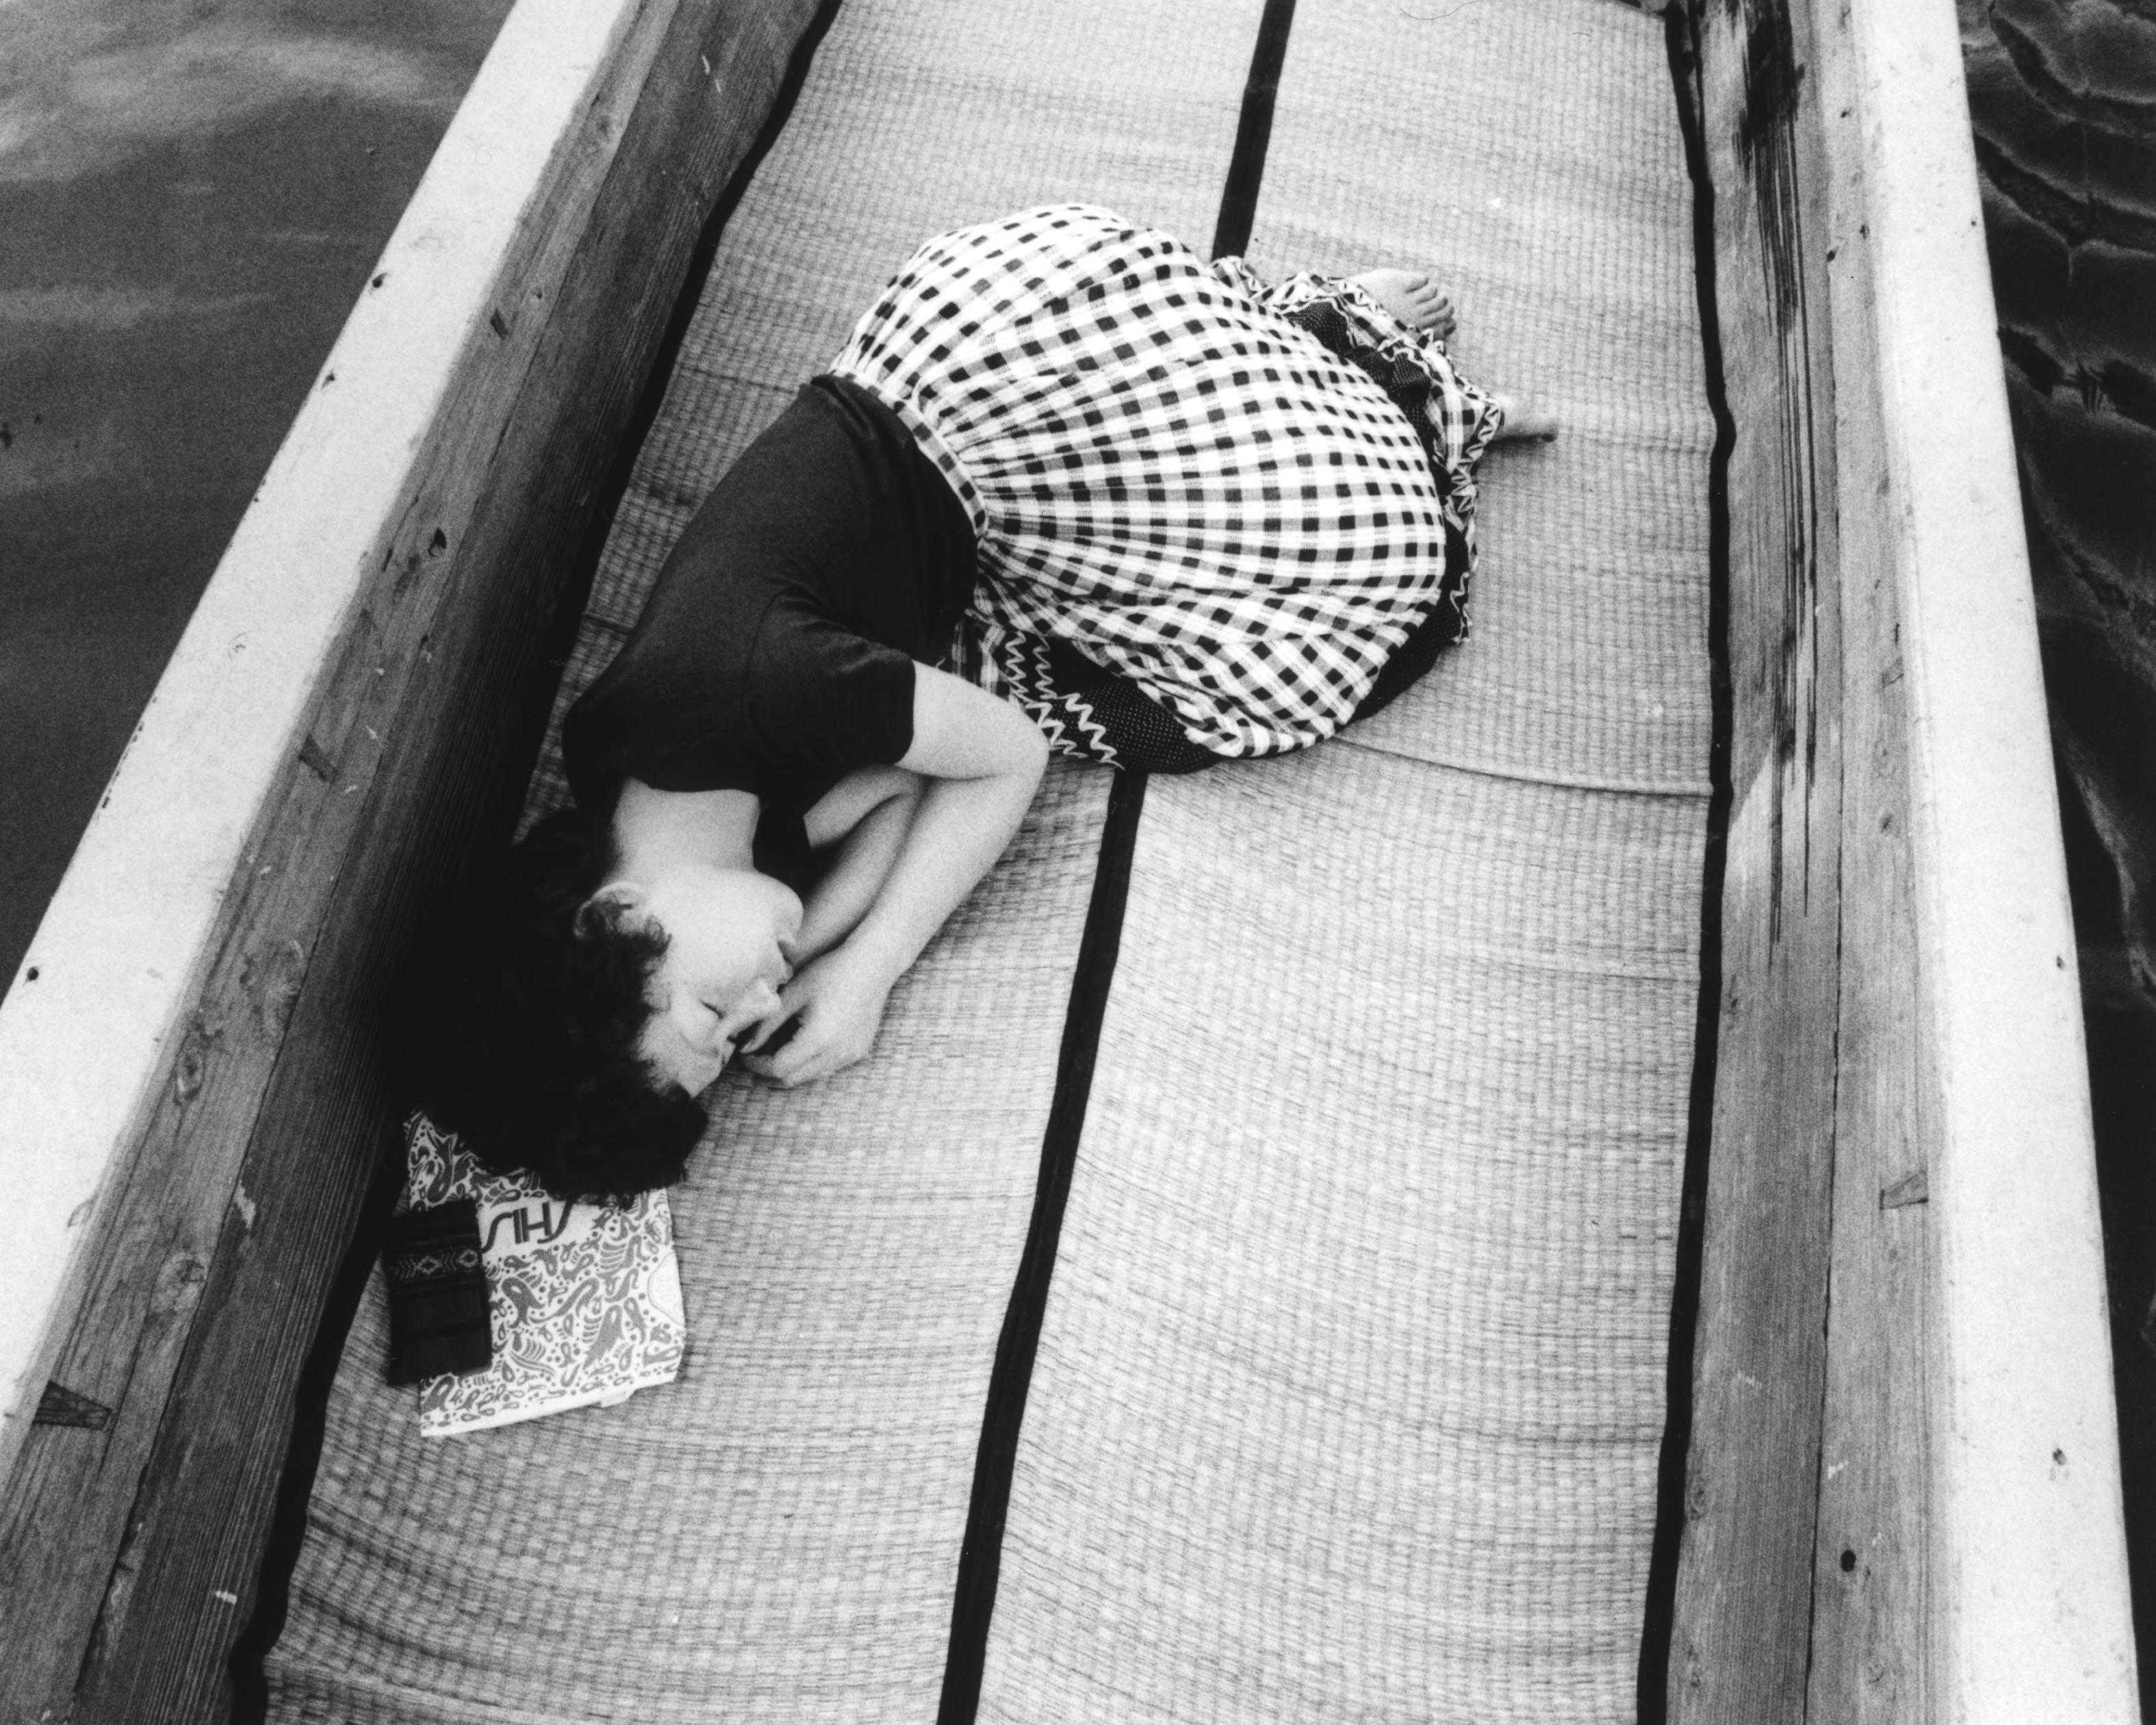 'Sentimental Journey', 1971, Photo by Araki